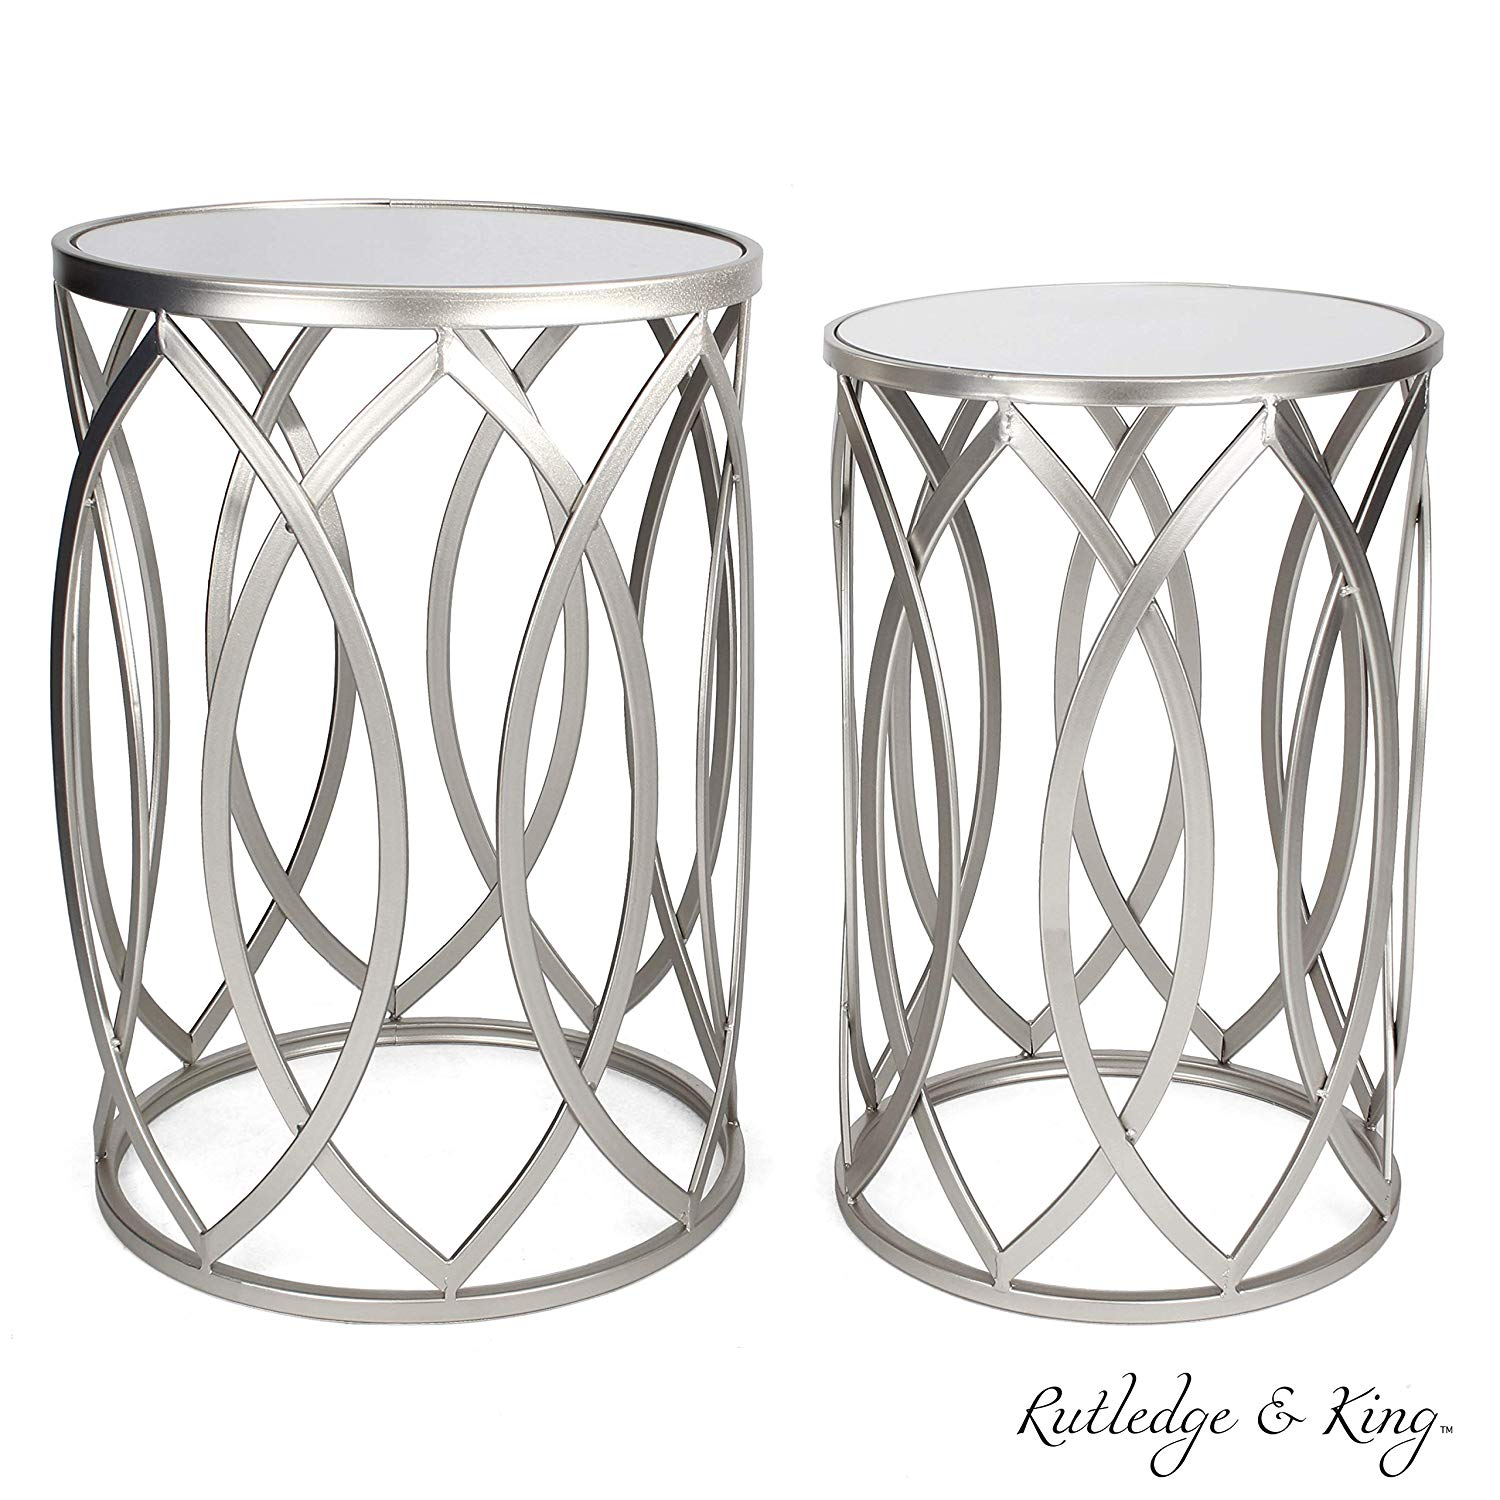 Round End Table Set Silver End Tables With Mirrored Tops Nesting Round Accent Tables Silver And Mirrored Metal Side Tables Rutledge King Blufton End Table Set Walmart Com Walmart Com